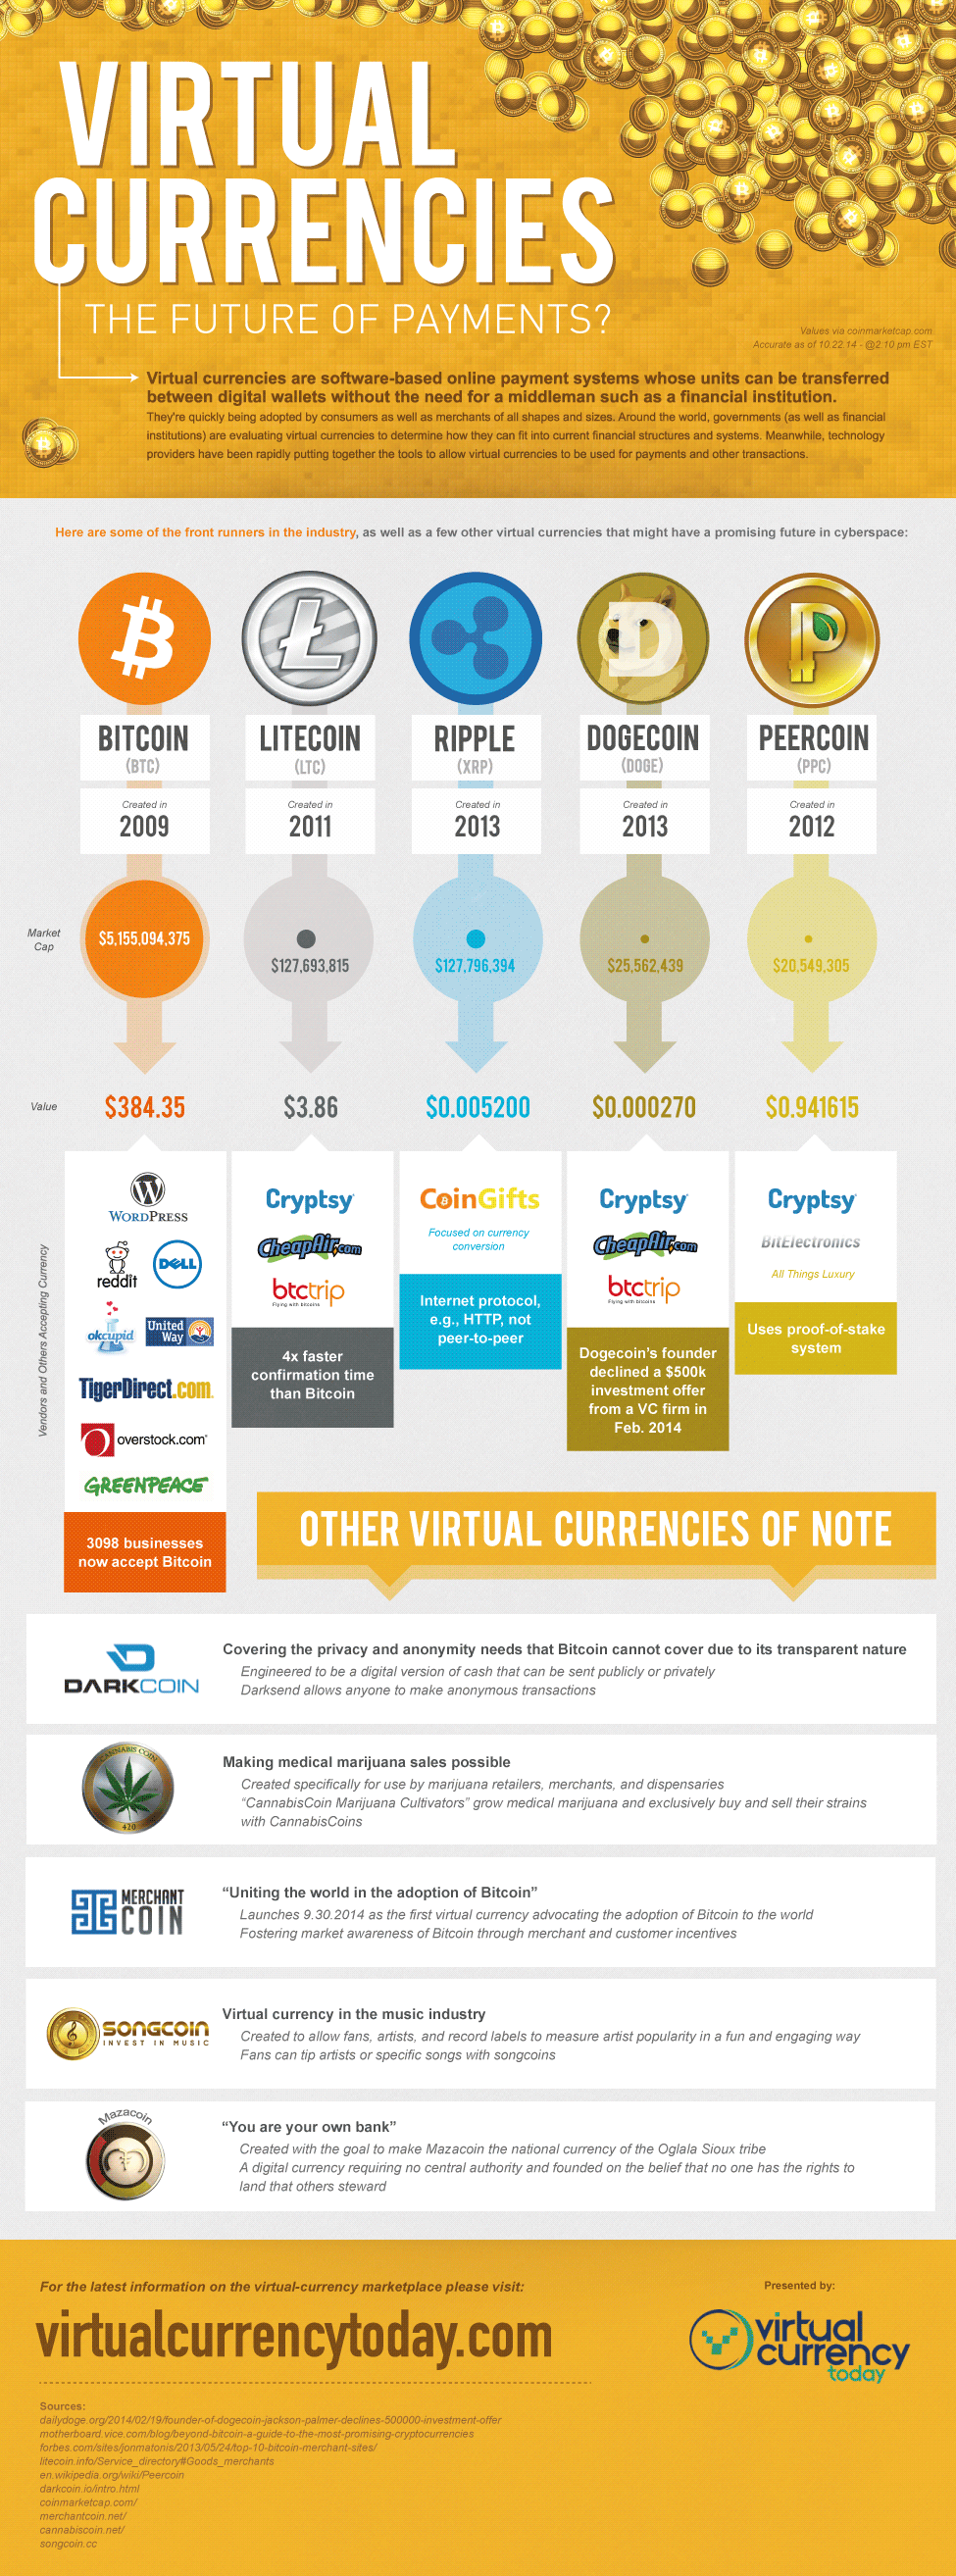 Virtual Currencies: The Future Of Payments?